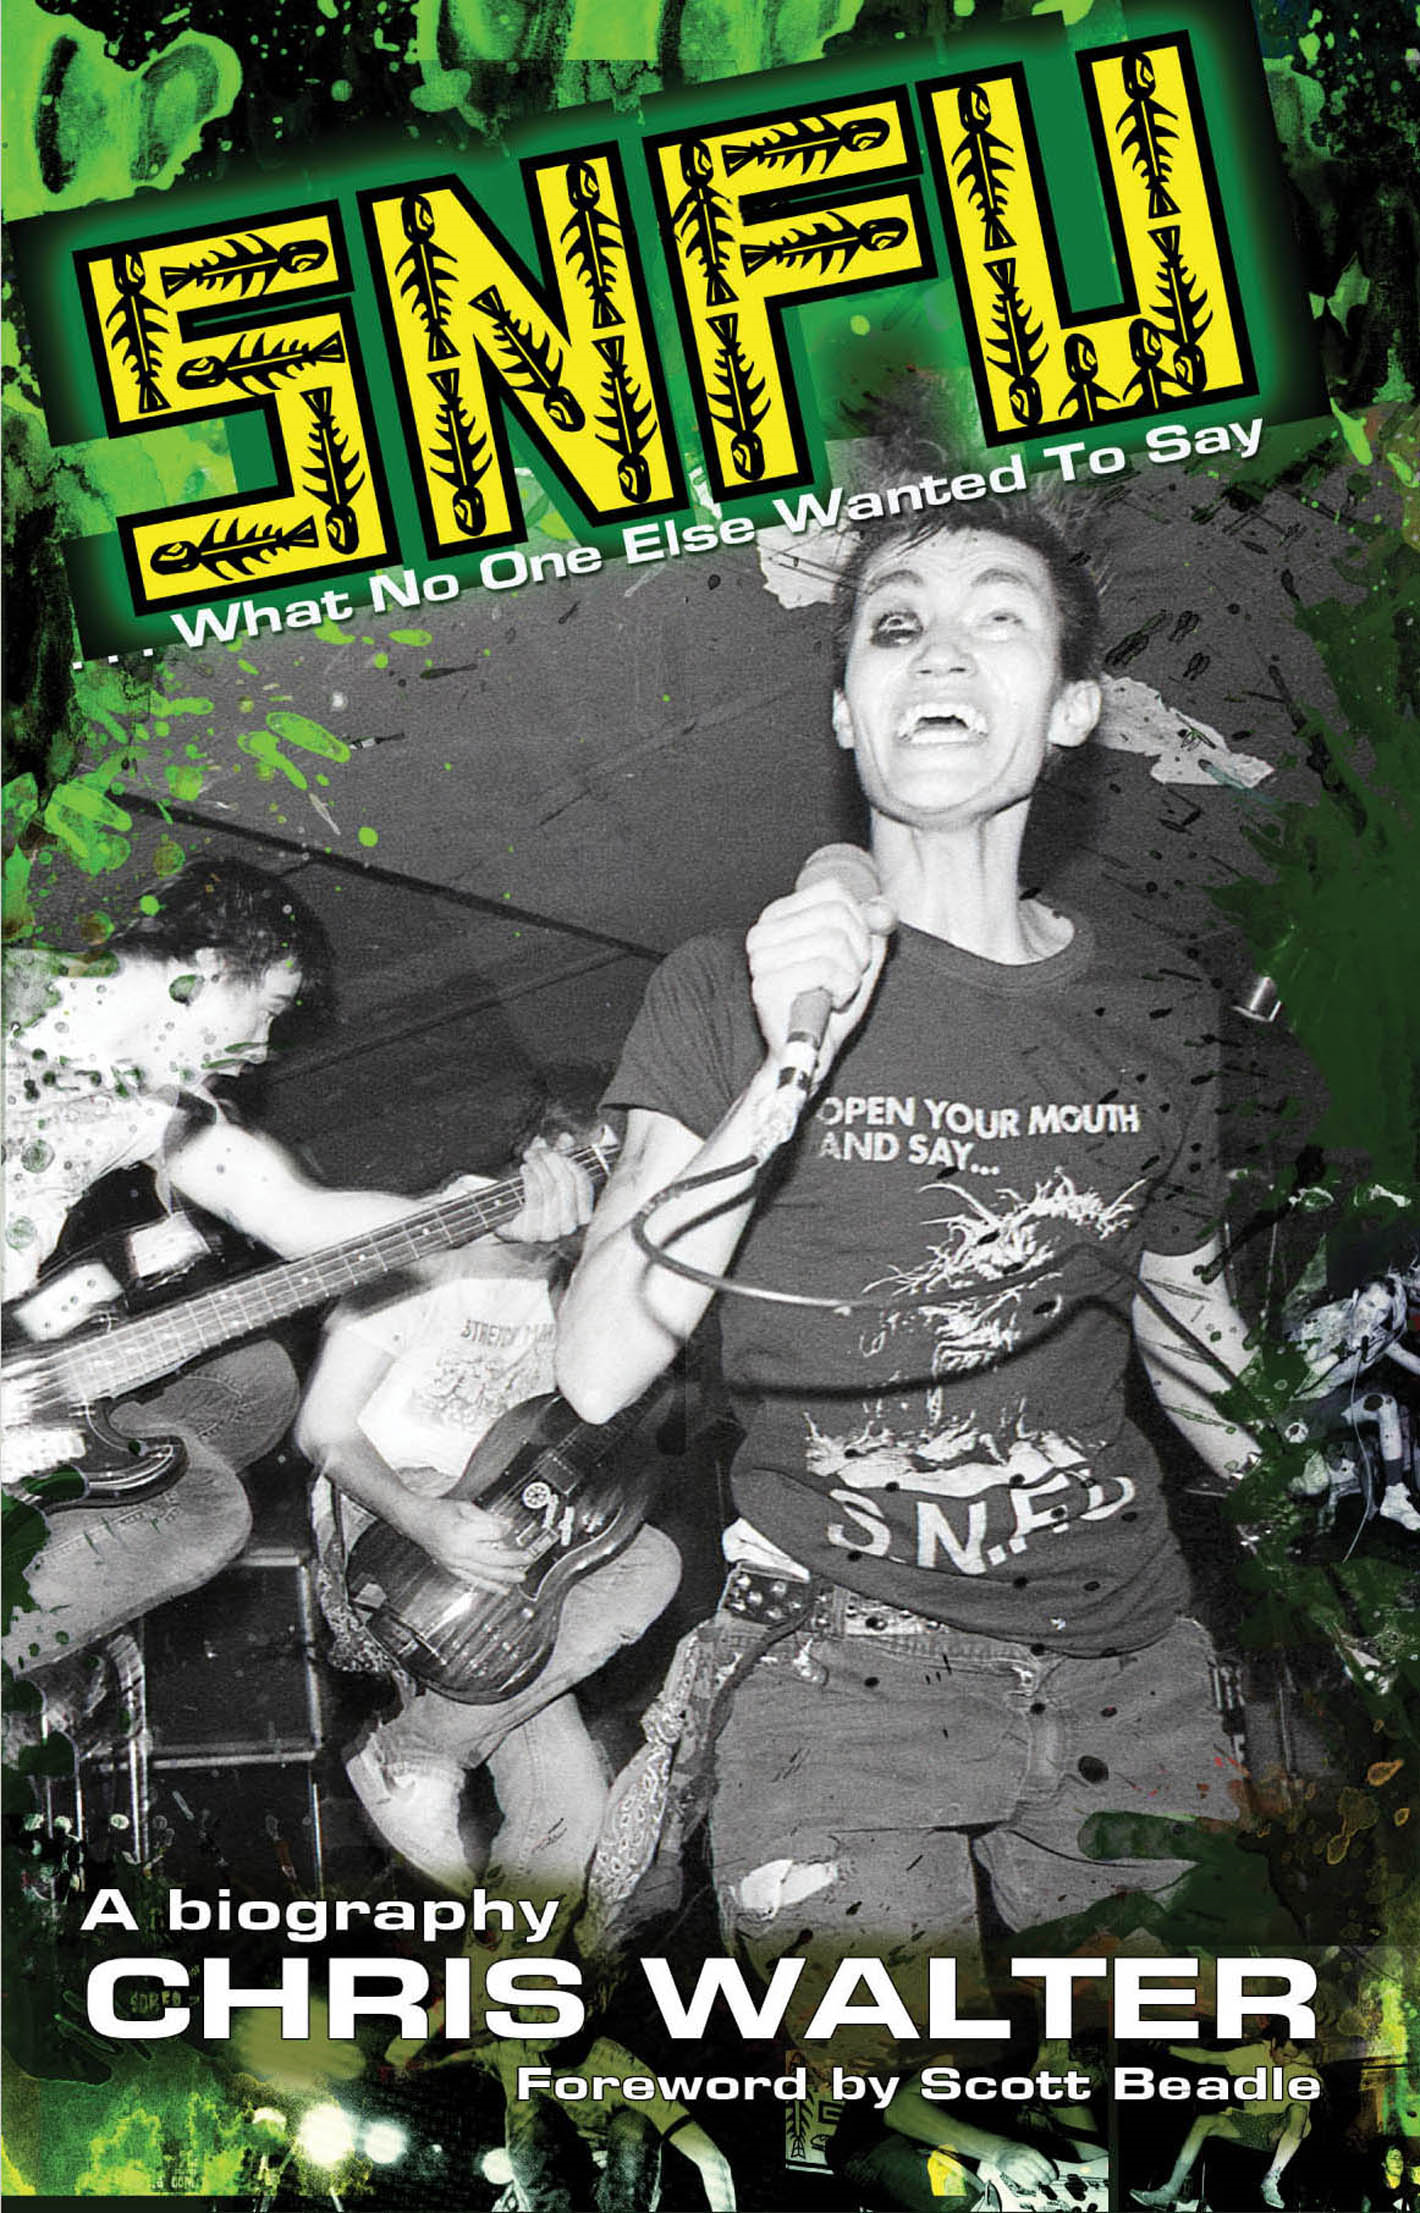 SNFU: What No One Else Wanted To Say By: Chris Walter